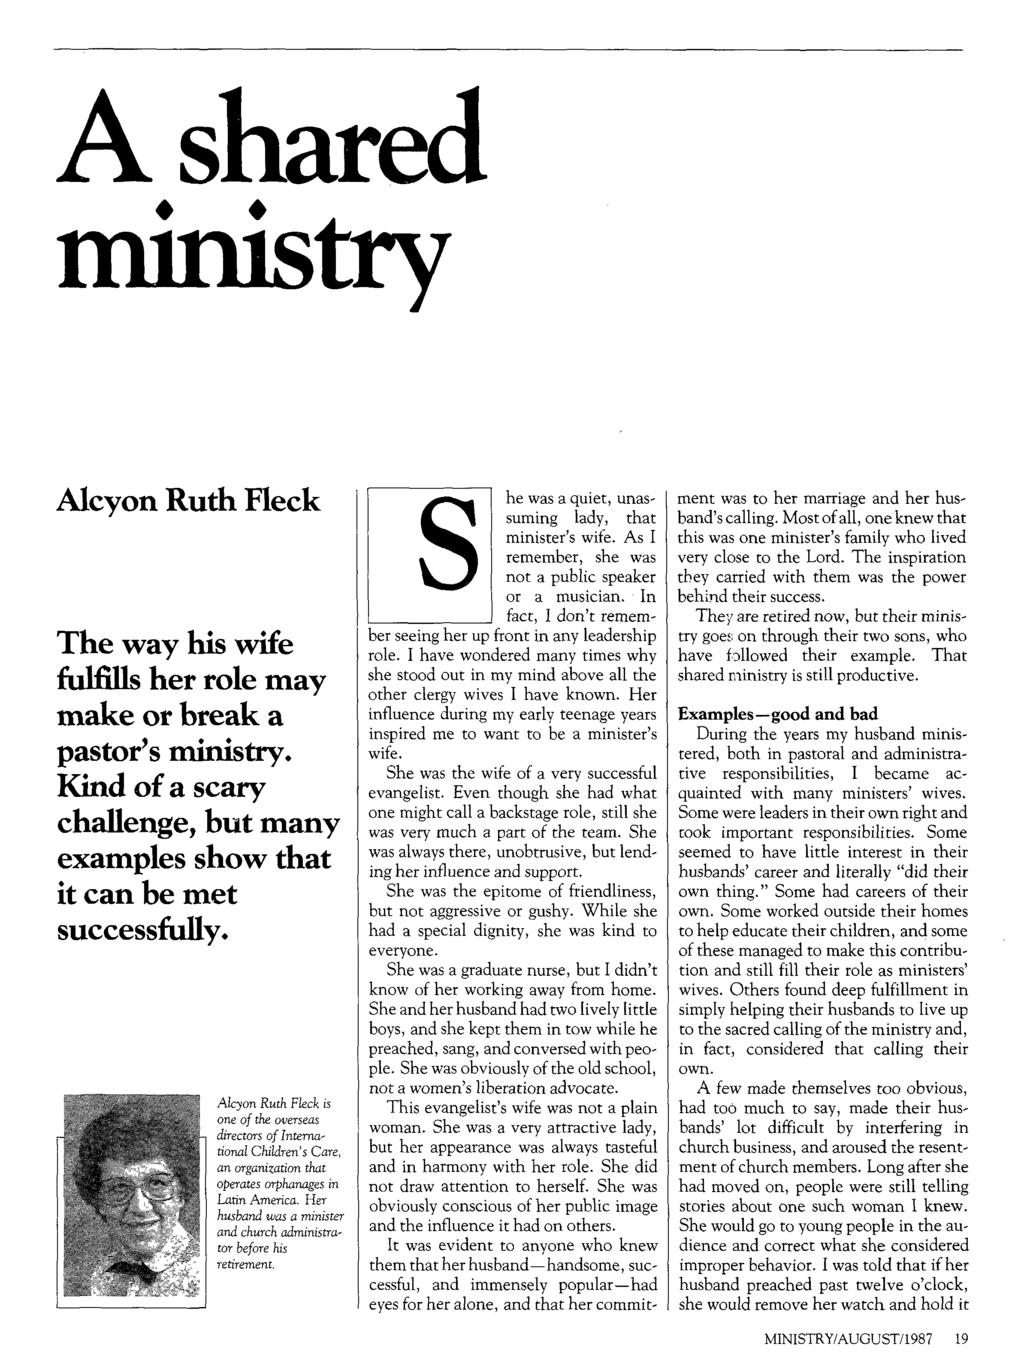 A shared ministry Alcyon Ruth Fleck The way his wife fulfills her role may make or break a pastor's ministry. Kind of a scary challenge, but many examples show that it can be met successfully.